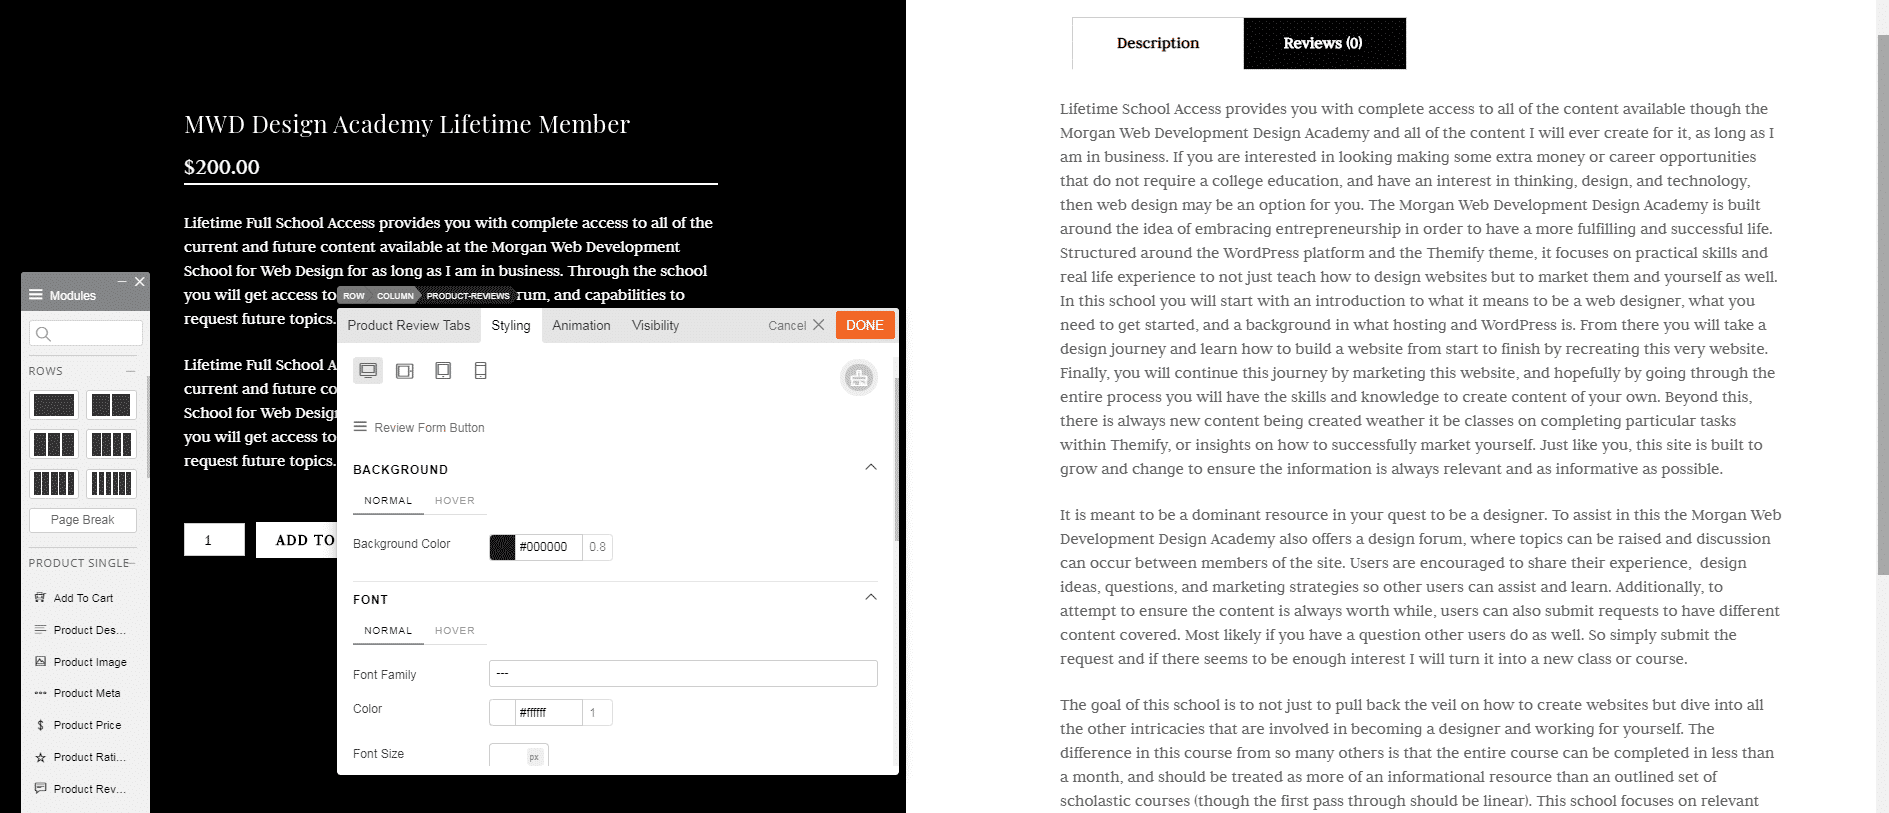 productPage8